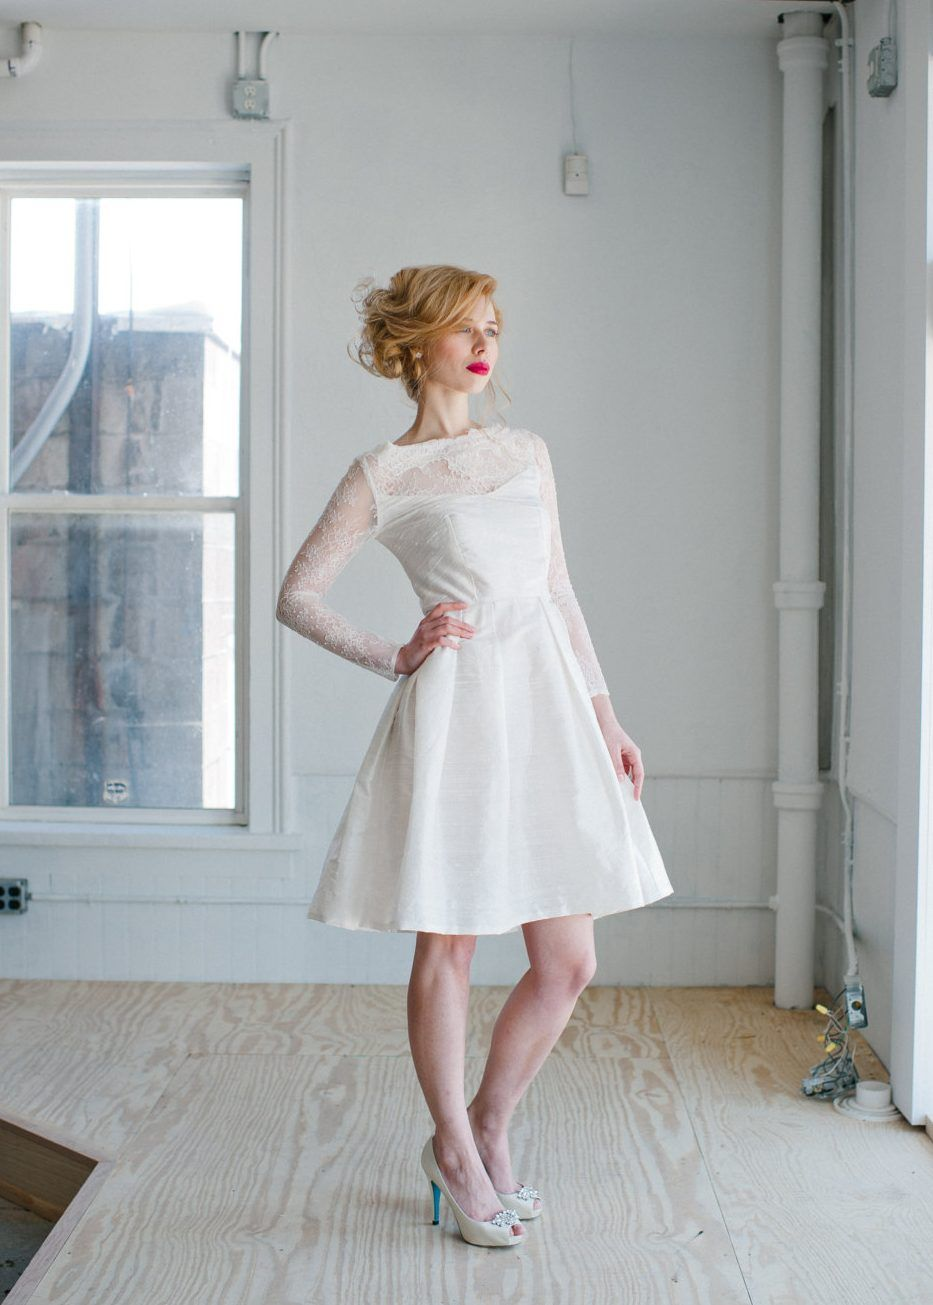 MADE BY ANATOMY | Anatomy, Chic vintage brides and Head piece